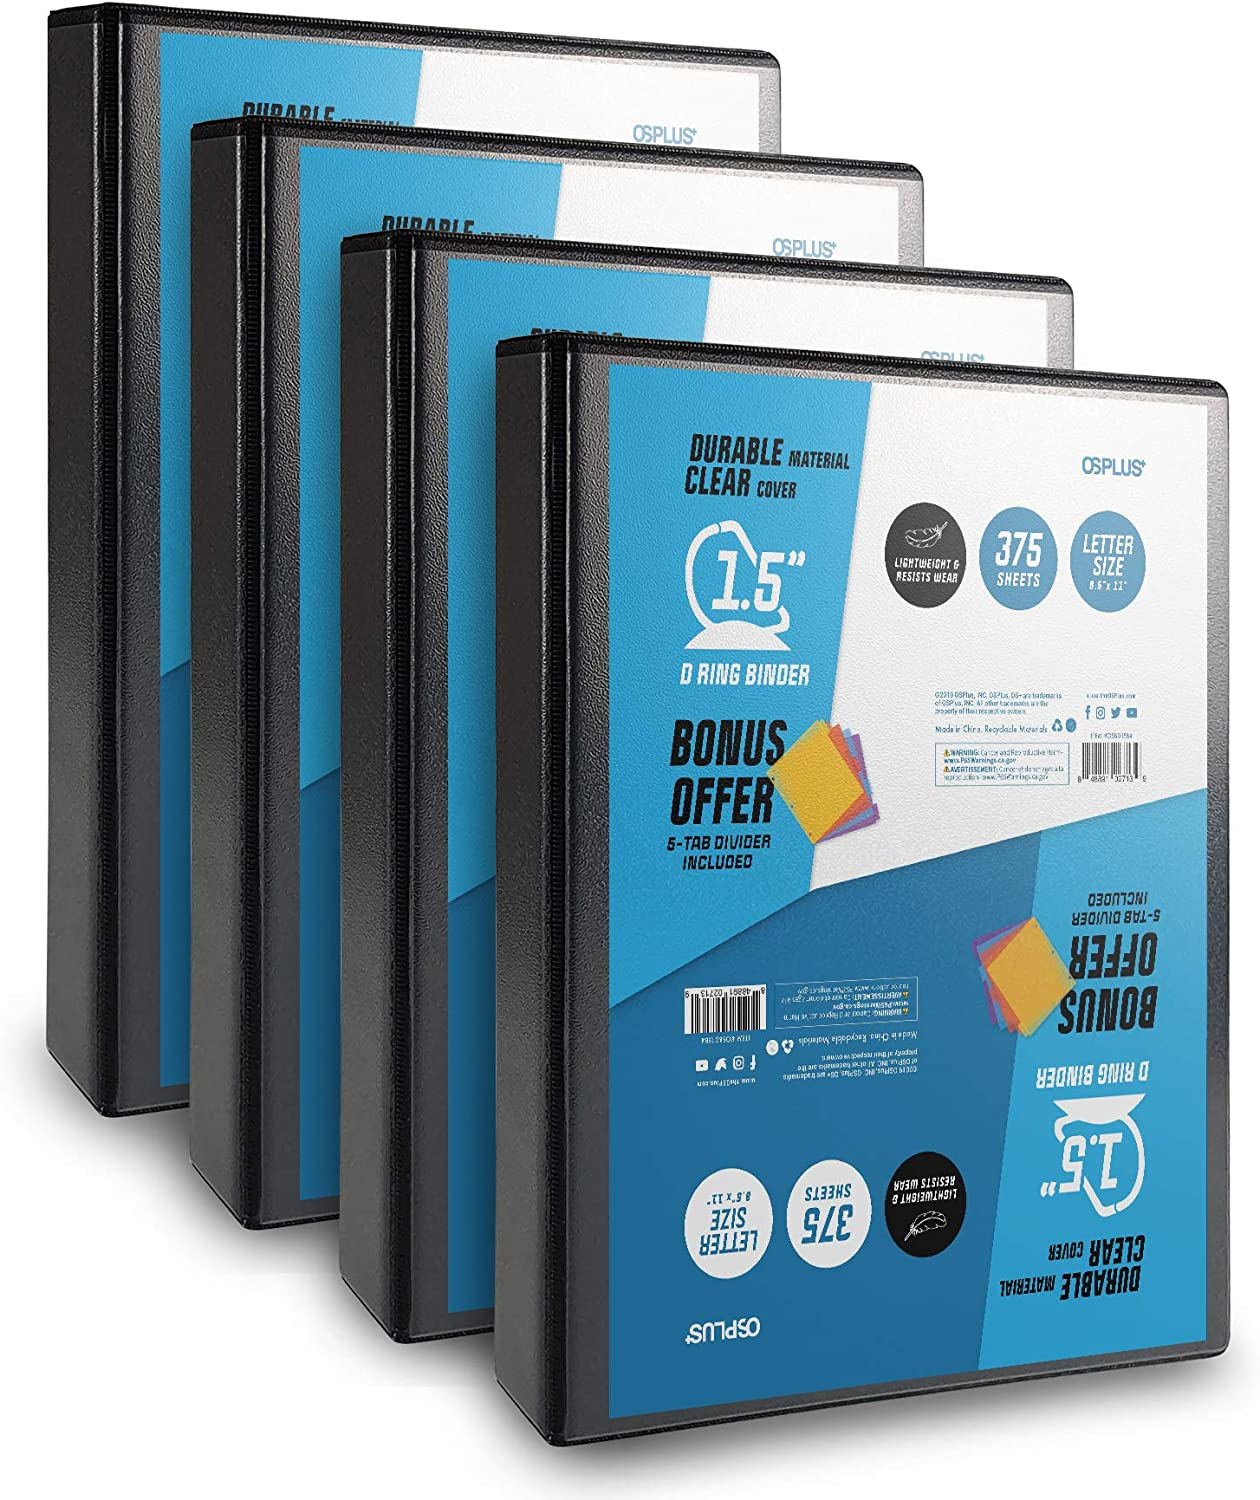 OS Plus Durable D-Ring Binder, 1.5 Inch - Black, 4 Pack. Bonus 1 Set Divider Included : Office Products